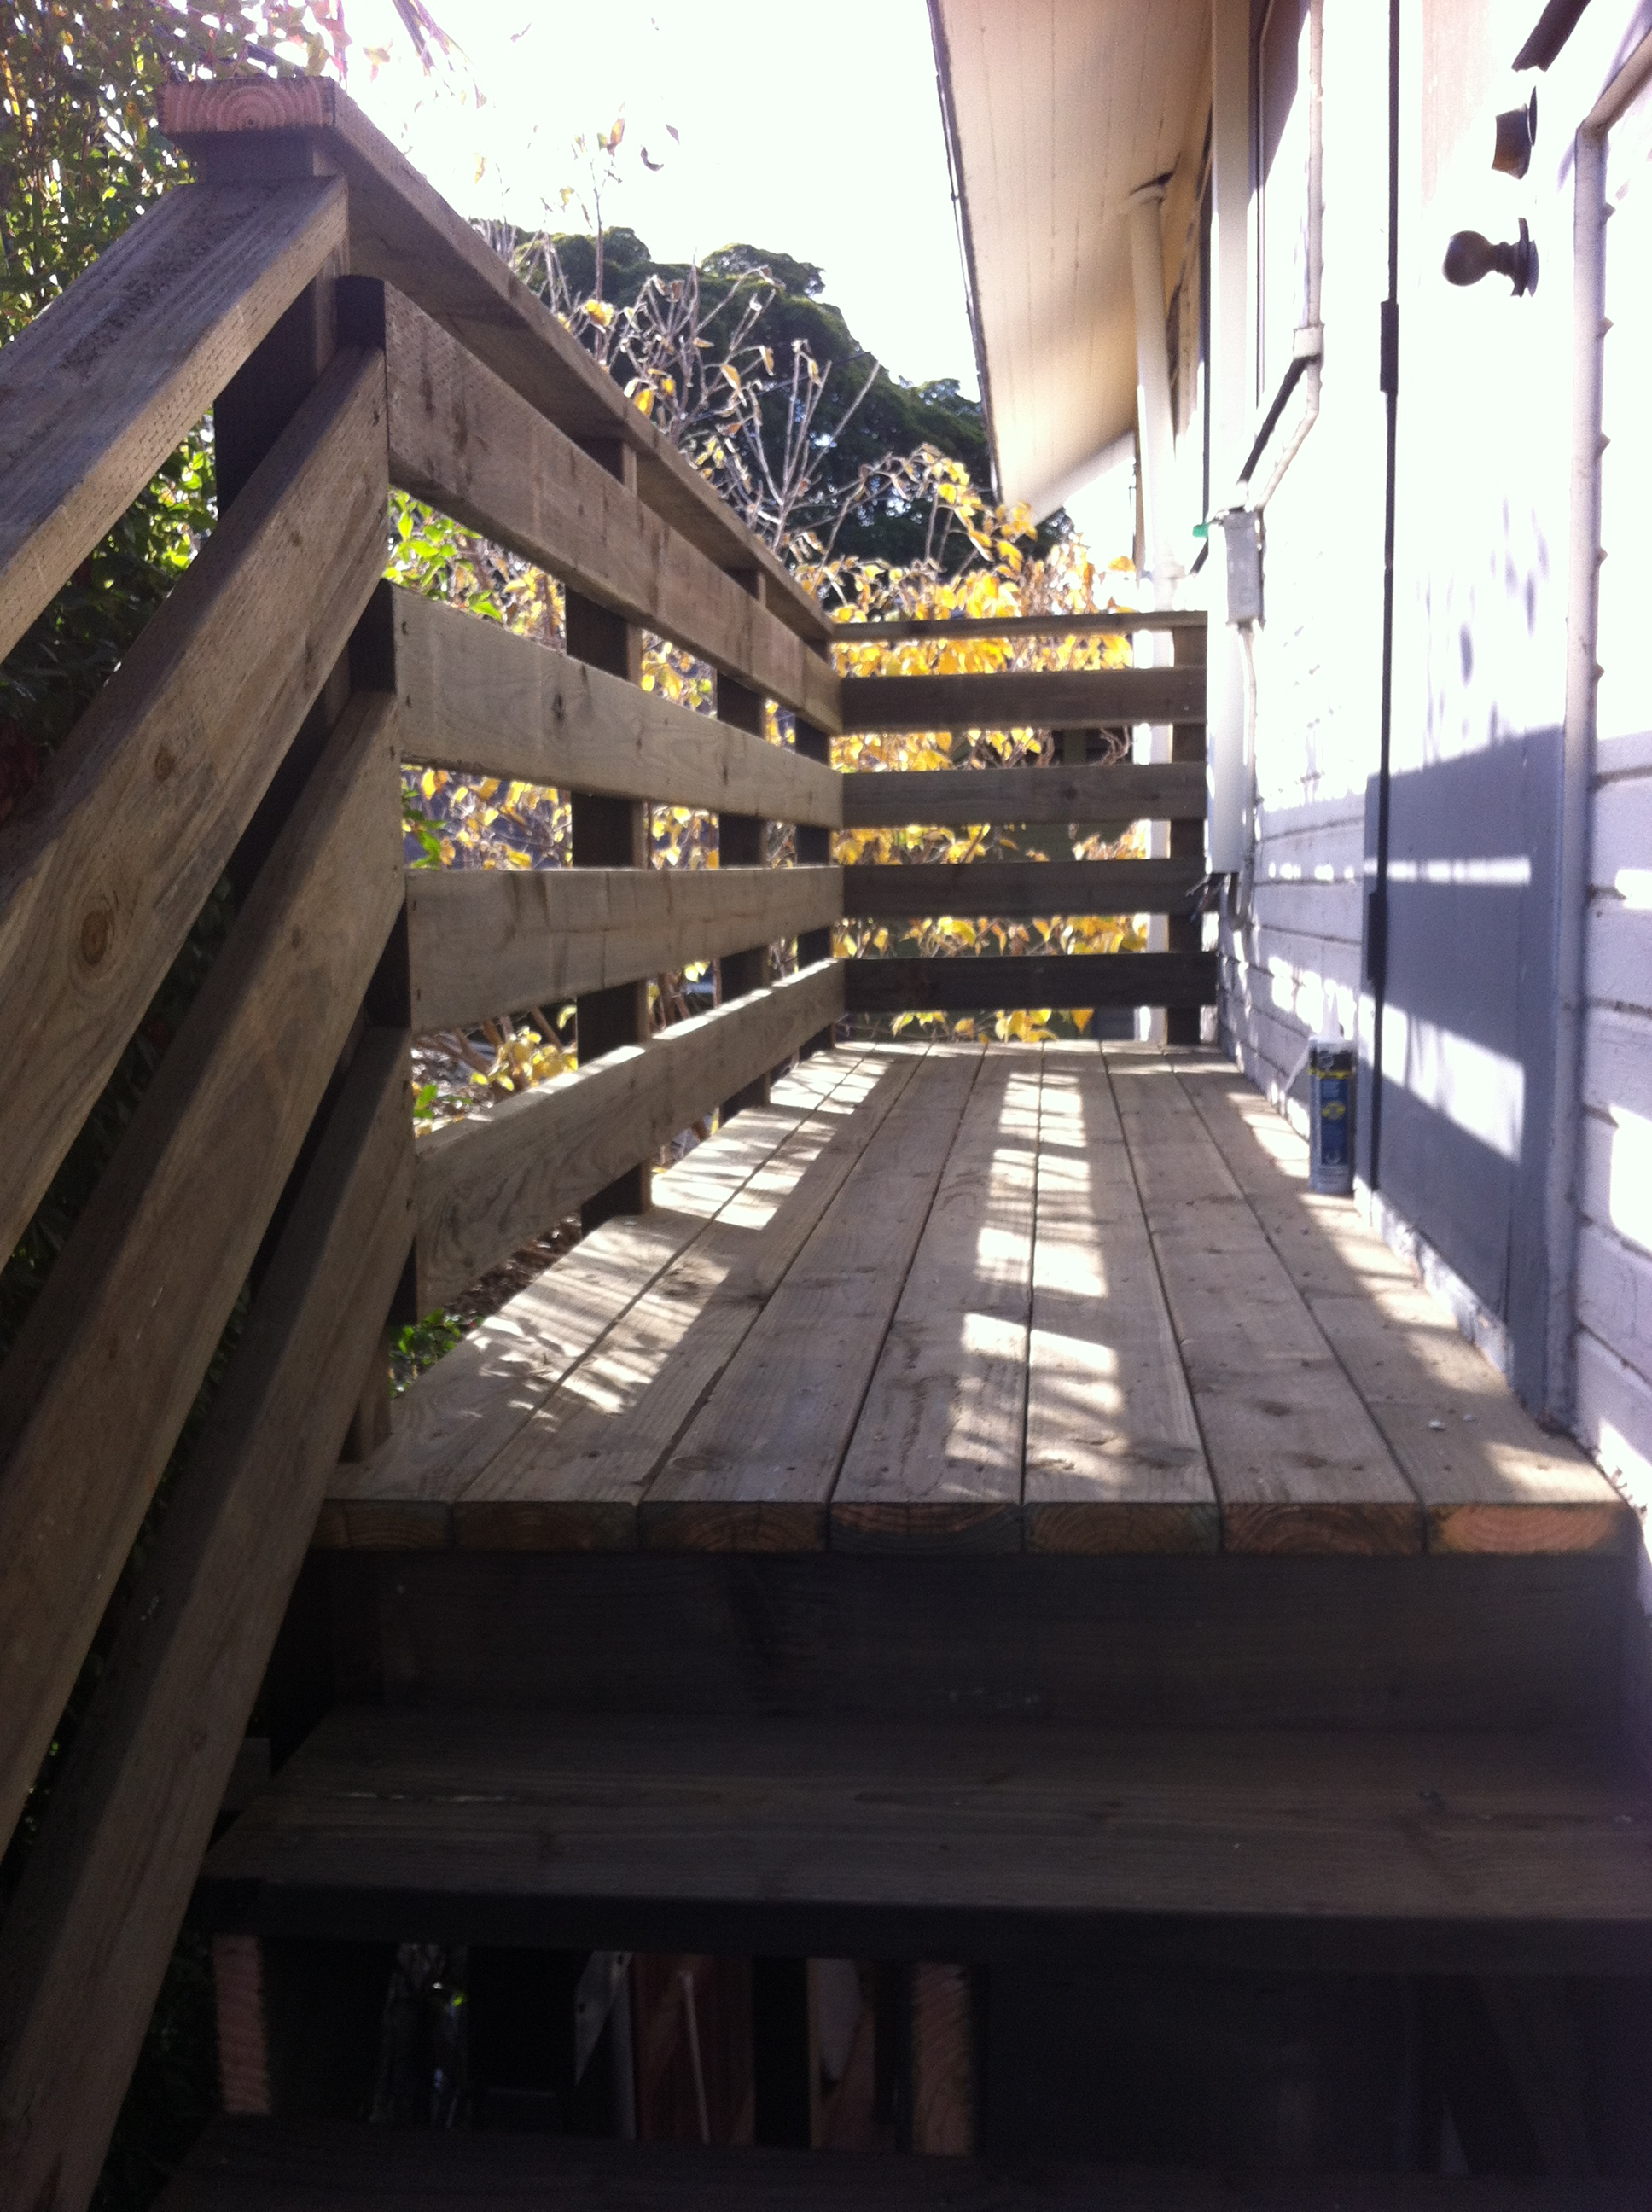 Pressure treated deck with guardrail